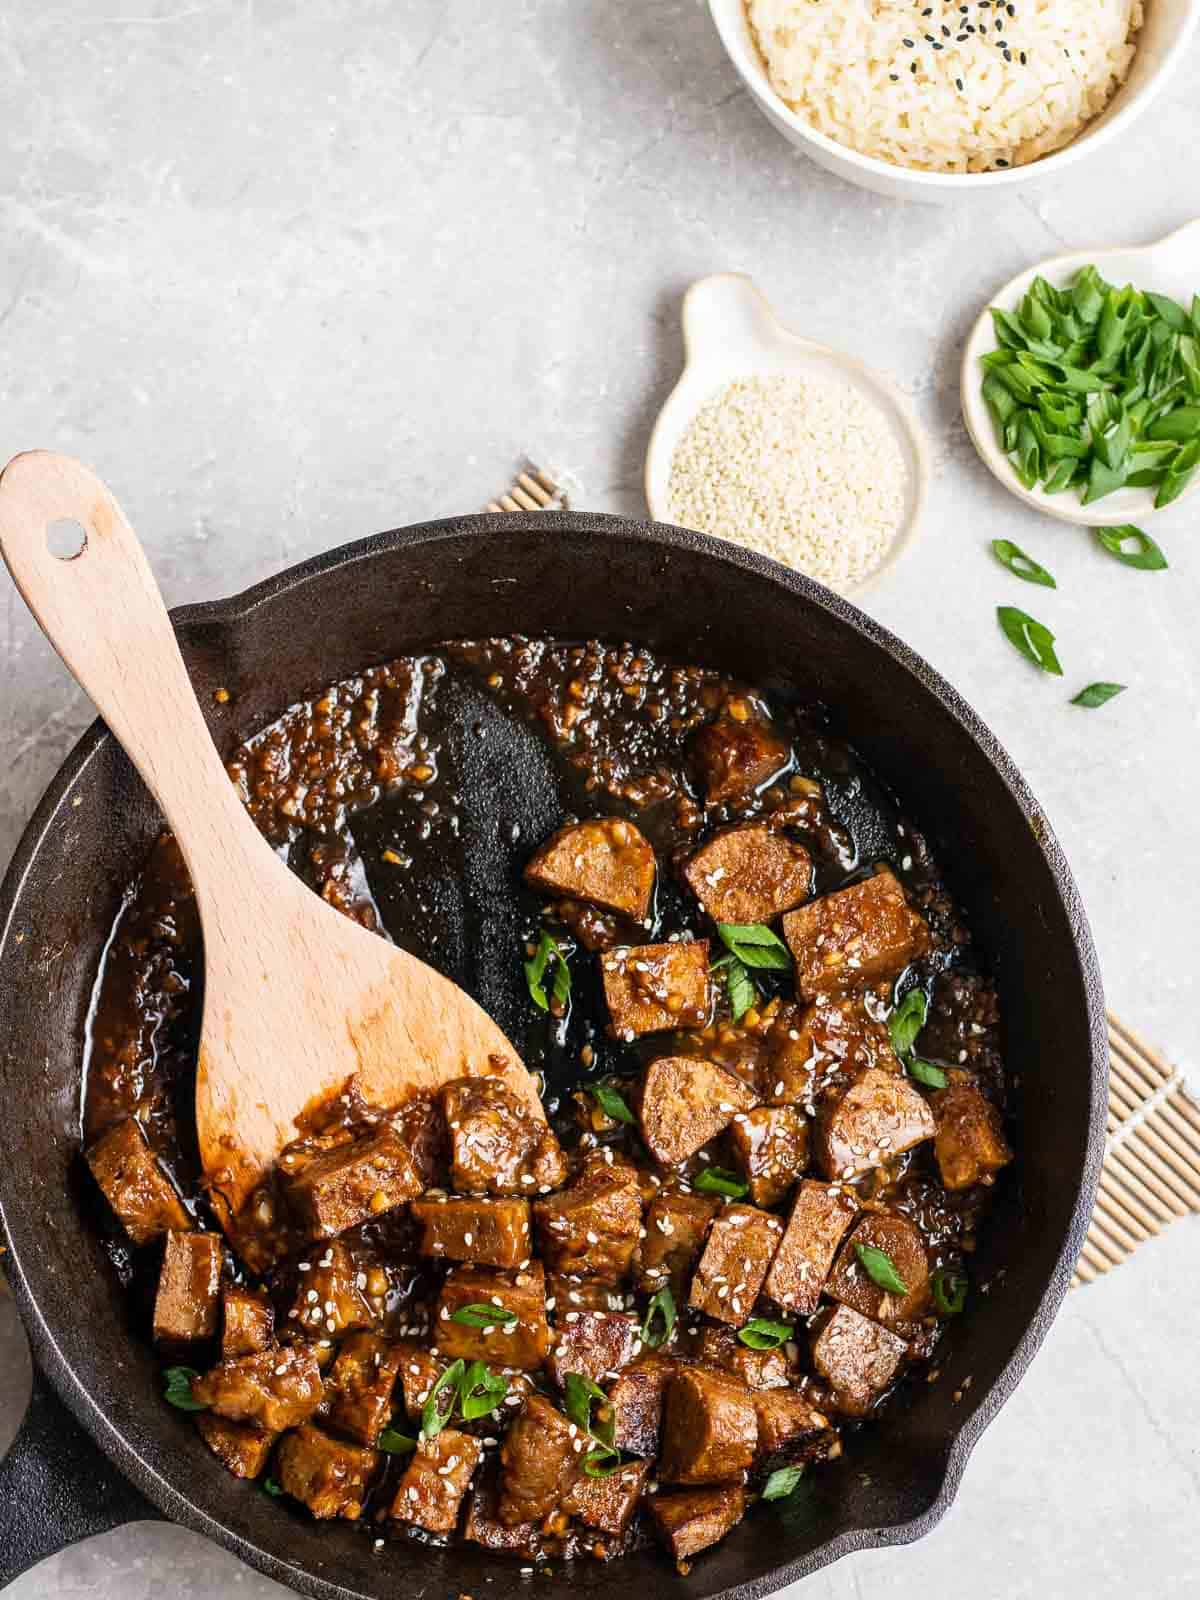 Vegan teriyaki chicken in a pan with wooden spatula topped with chopped green onion.